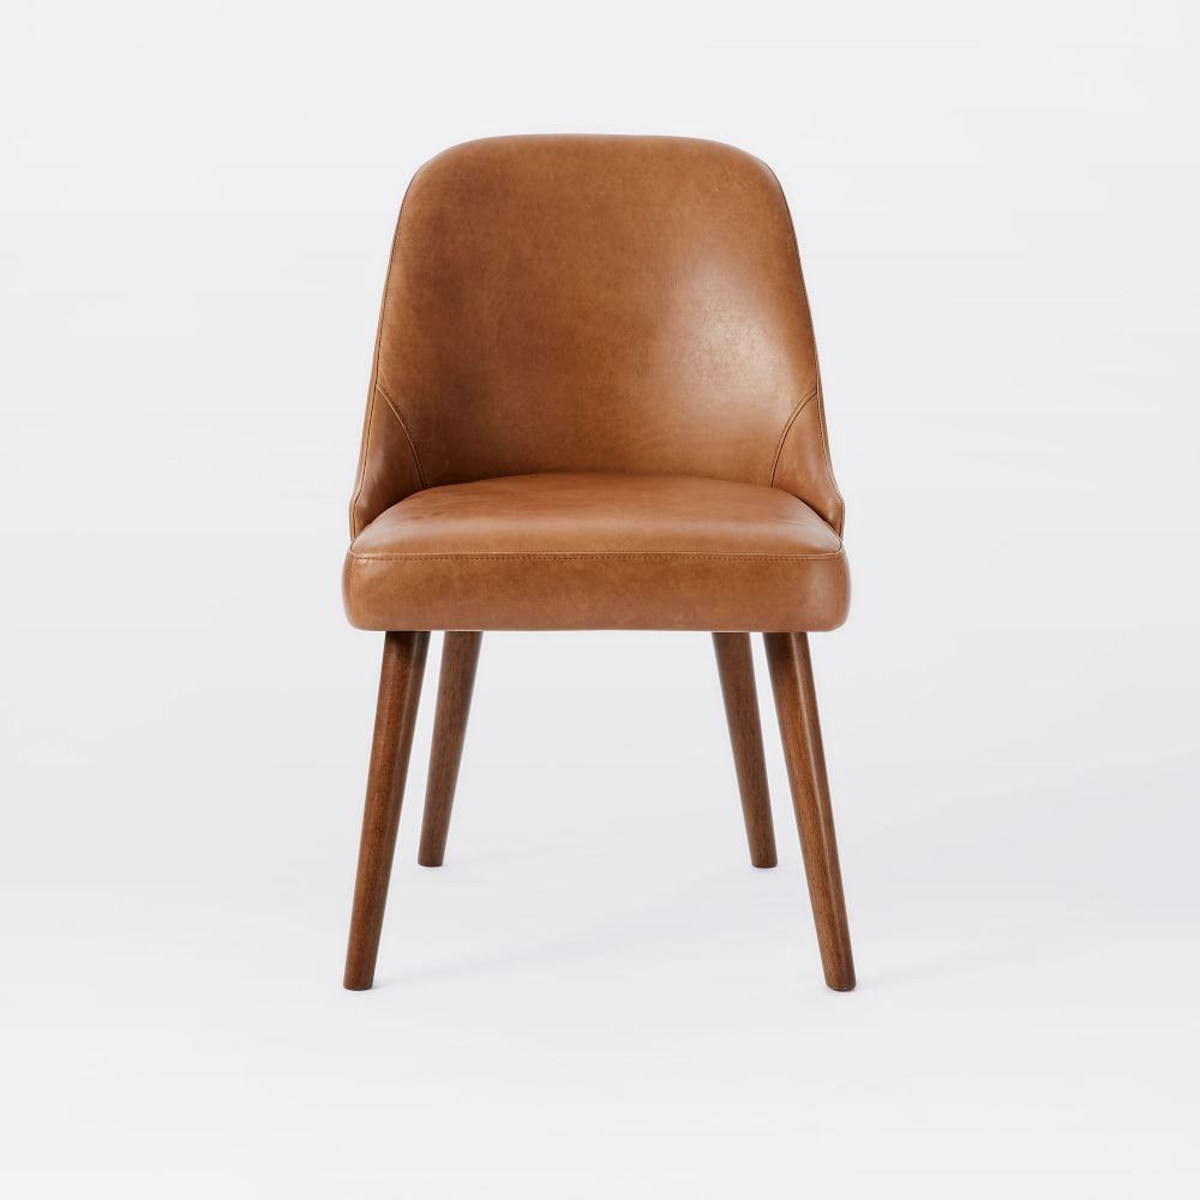 Best ideas about Leather Dining Chair . Save or Pin Mid Century Leather Dining Chair Now.